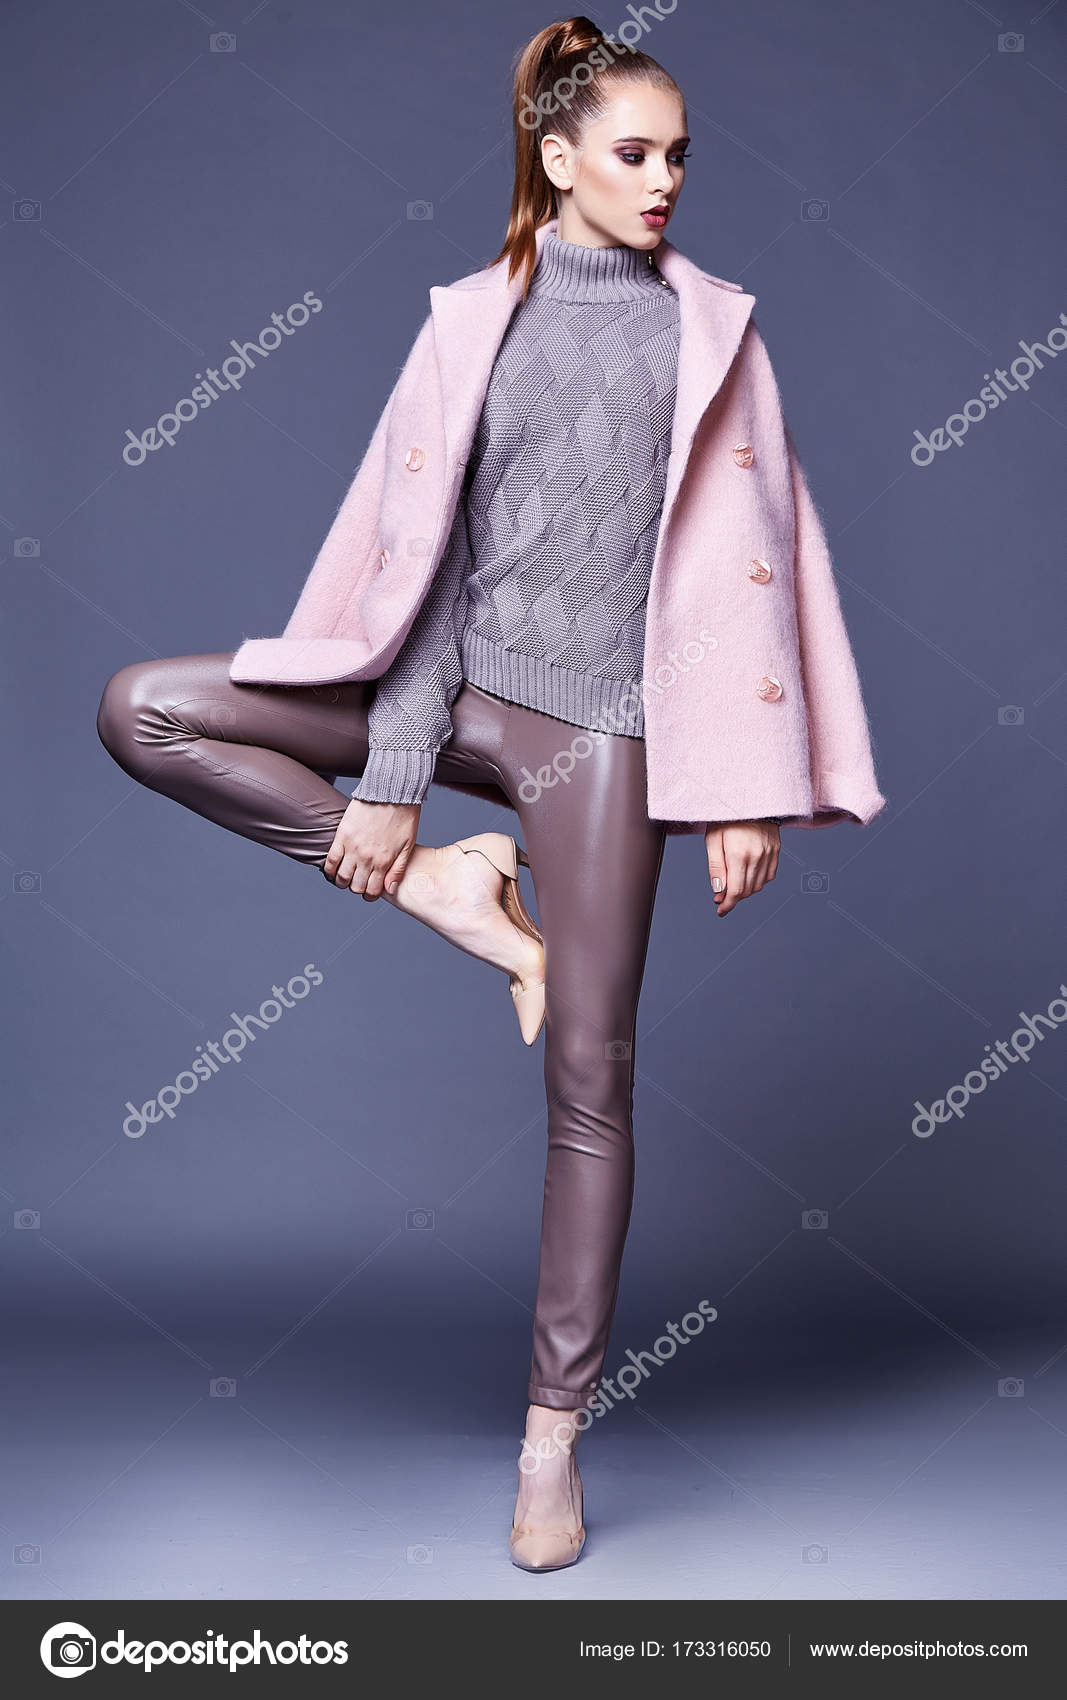 Woman Wear Business Style Clothing For Office Casual Meeting Outwear Cashmere Coat Pink Wool Knitted Sweater Lather Skinny Pants Fall Collection Casual